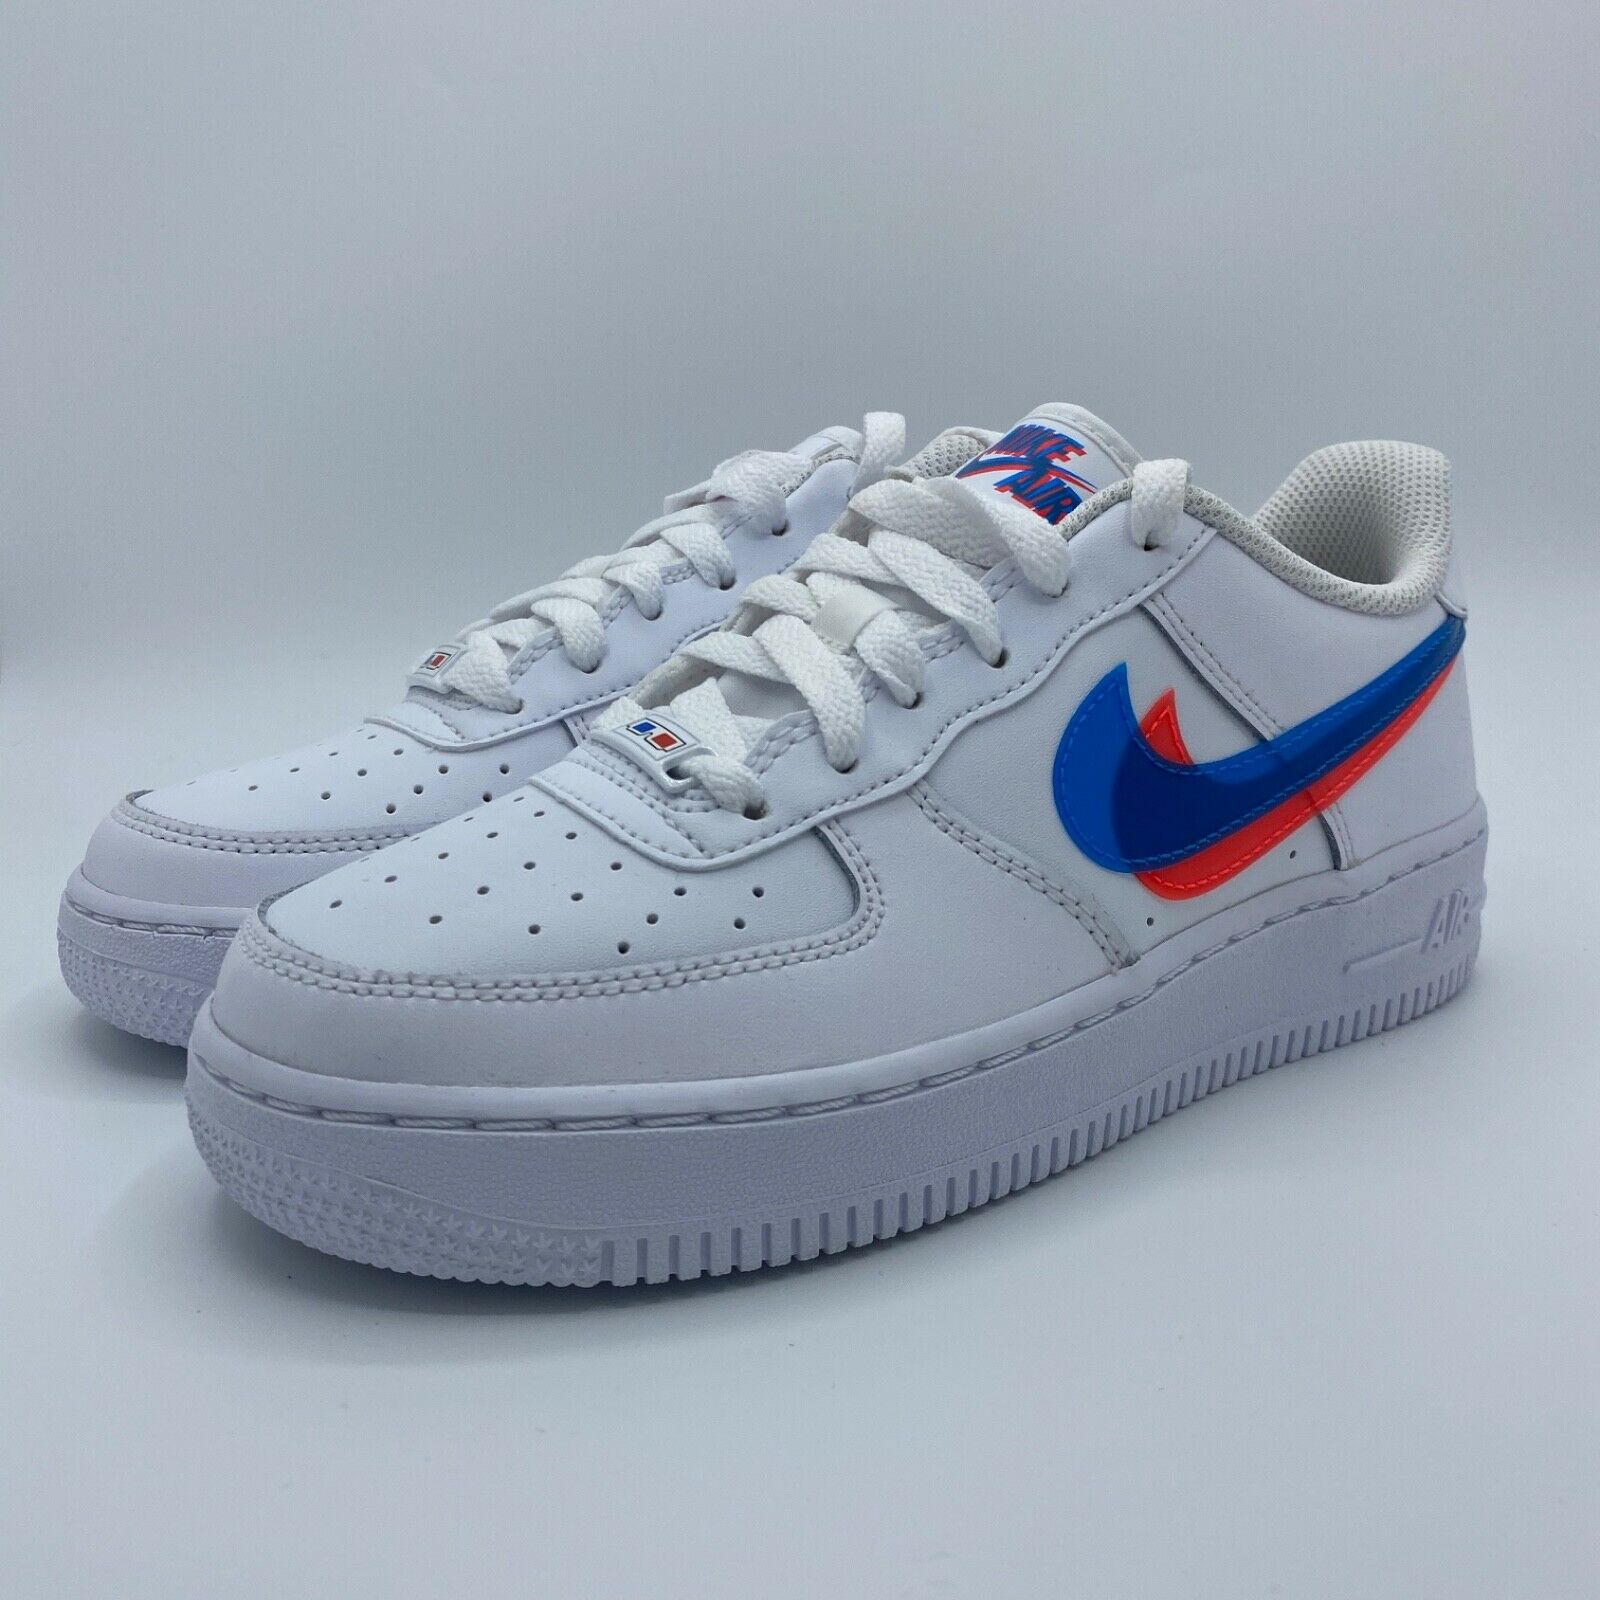 Nike Air Force 1 Low 3d Glasses GS